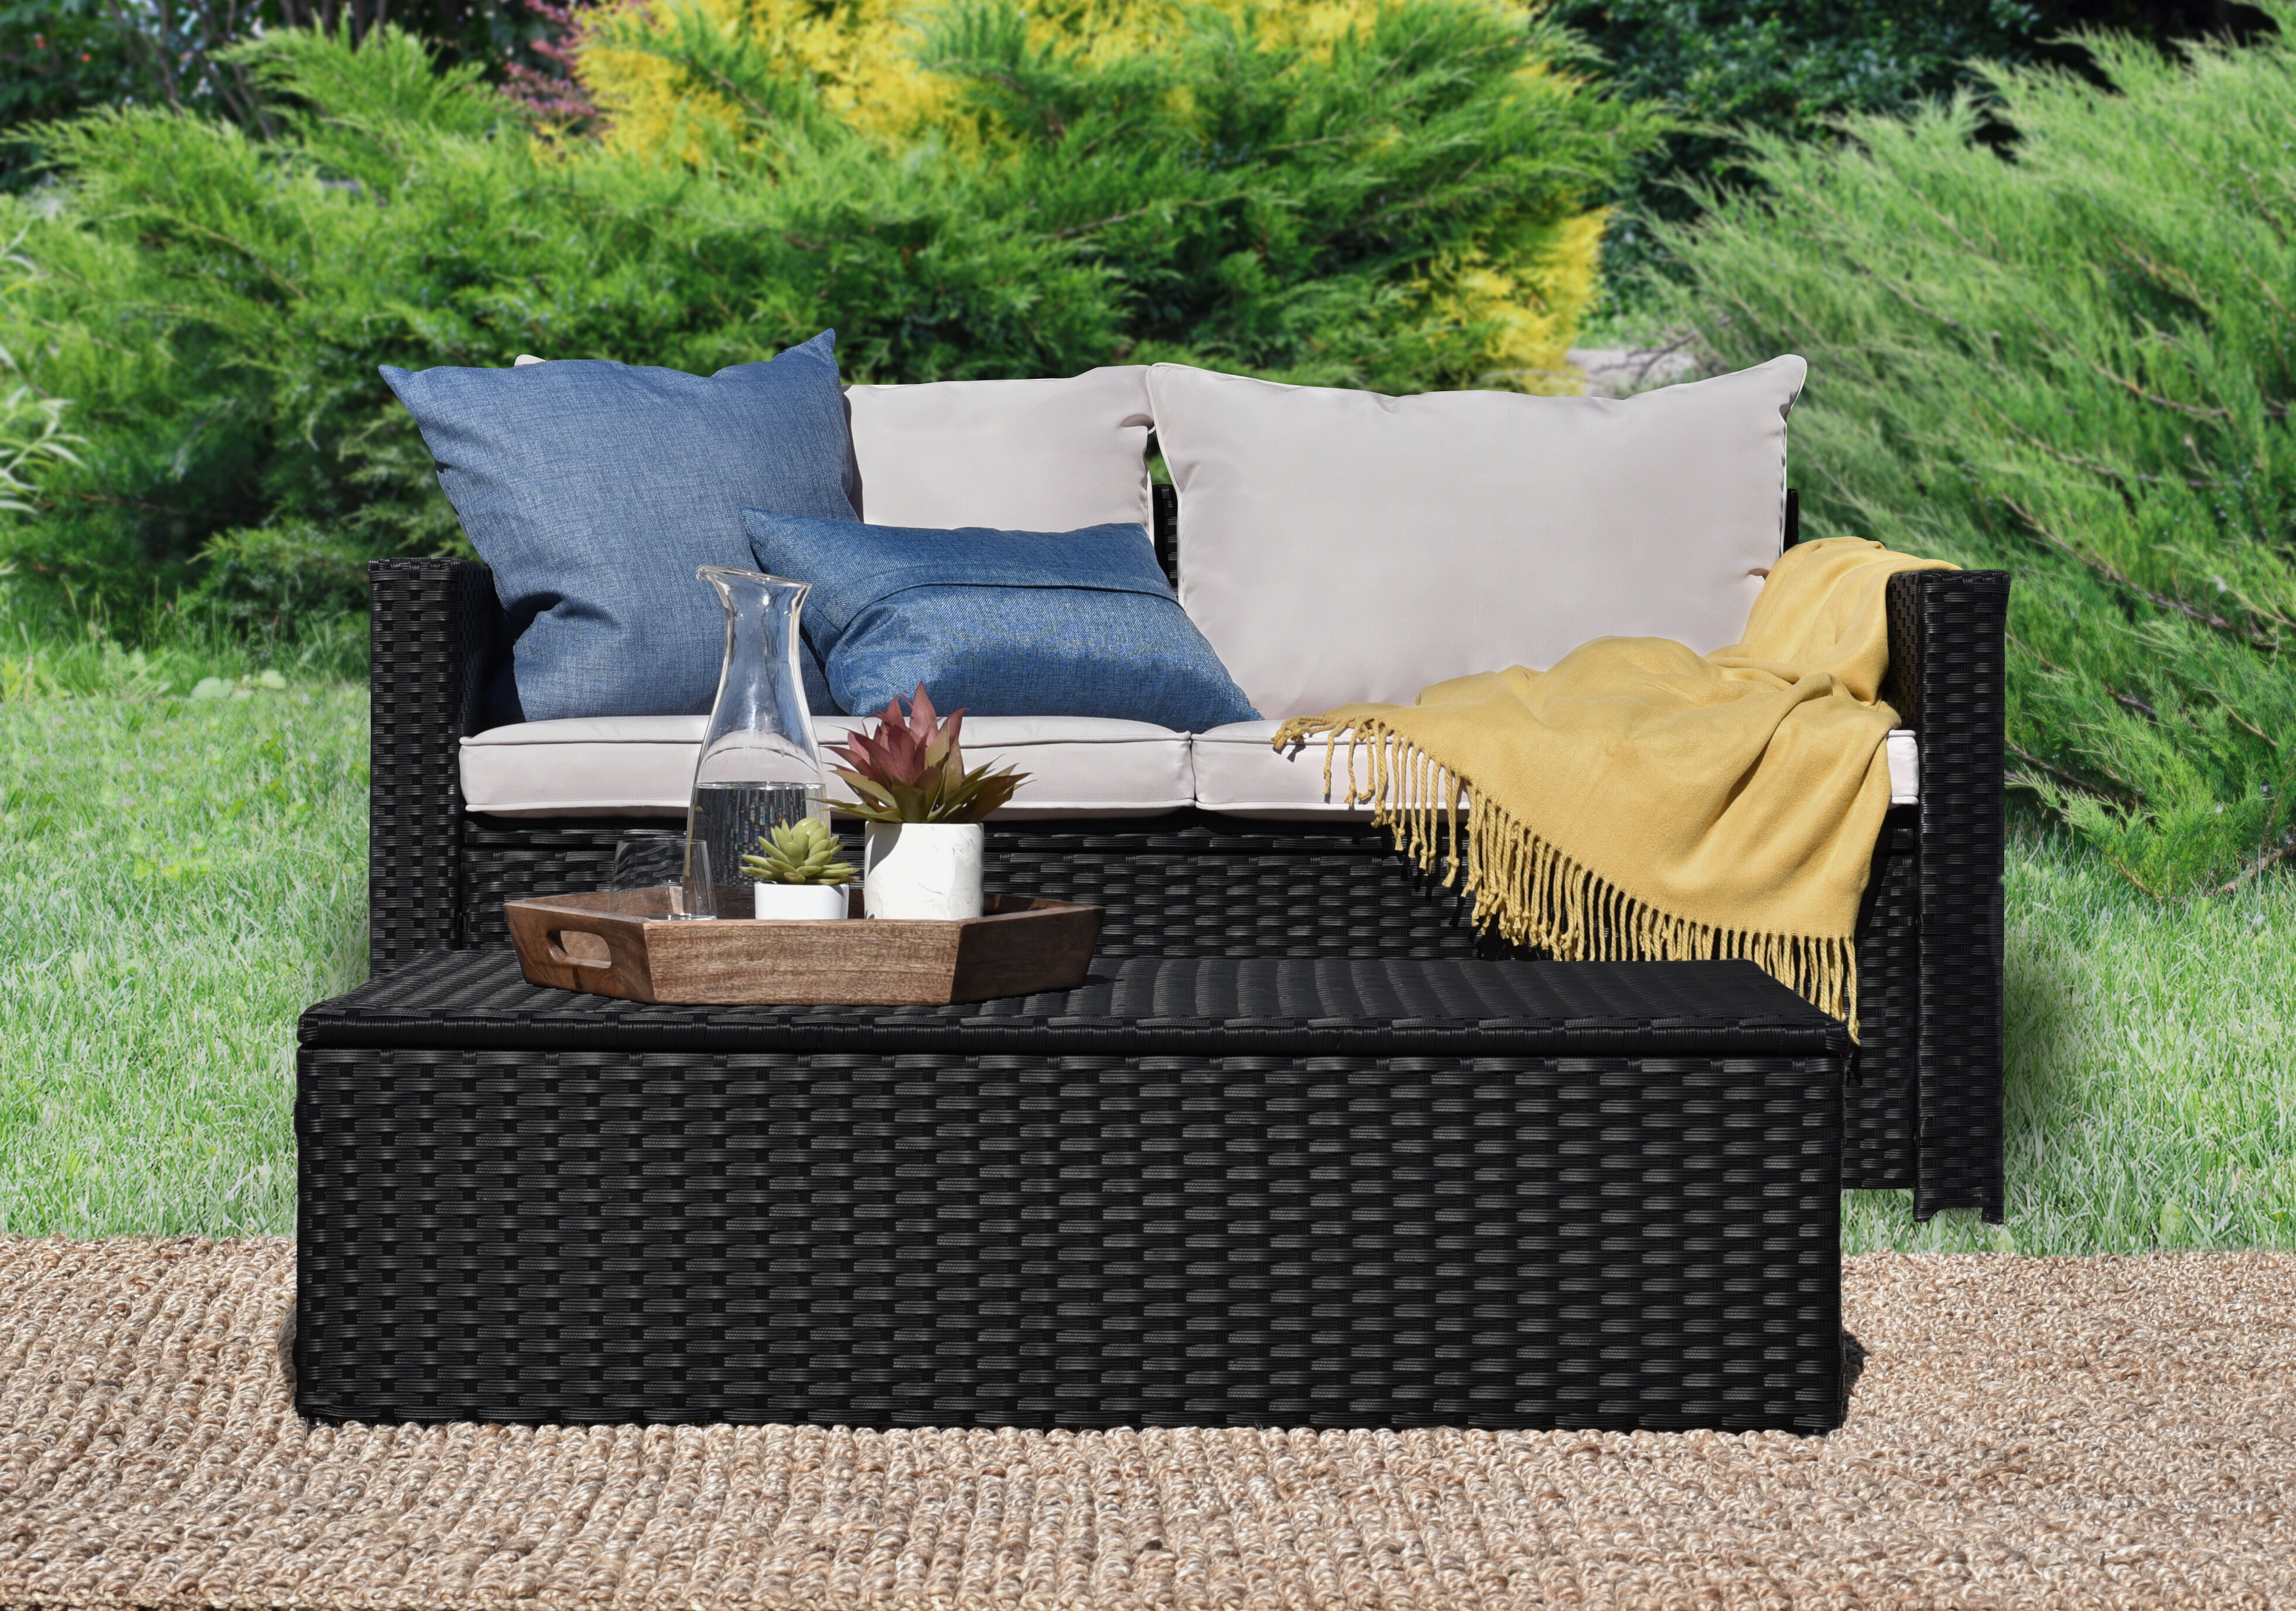 Swell Laguna 2 Piece Sofa Seating Group With Cushions Caraccident5 Cool Chair Designs And Ideas Caraccident5Info